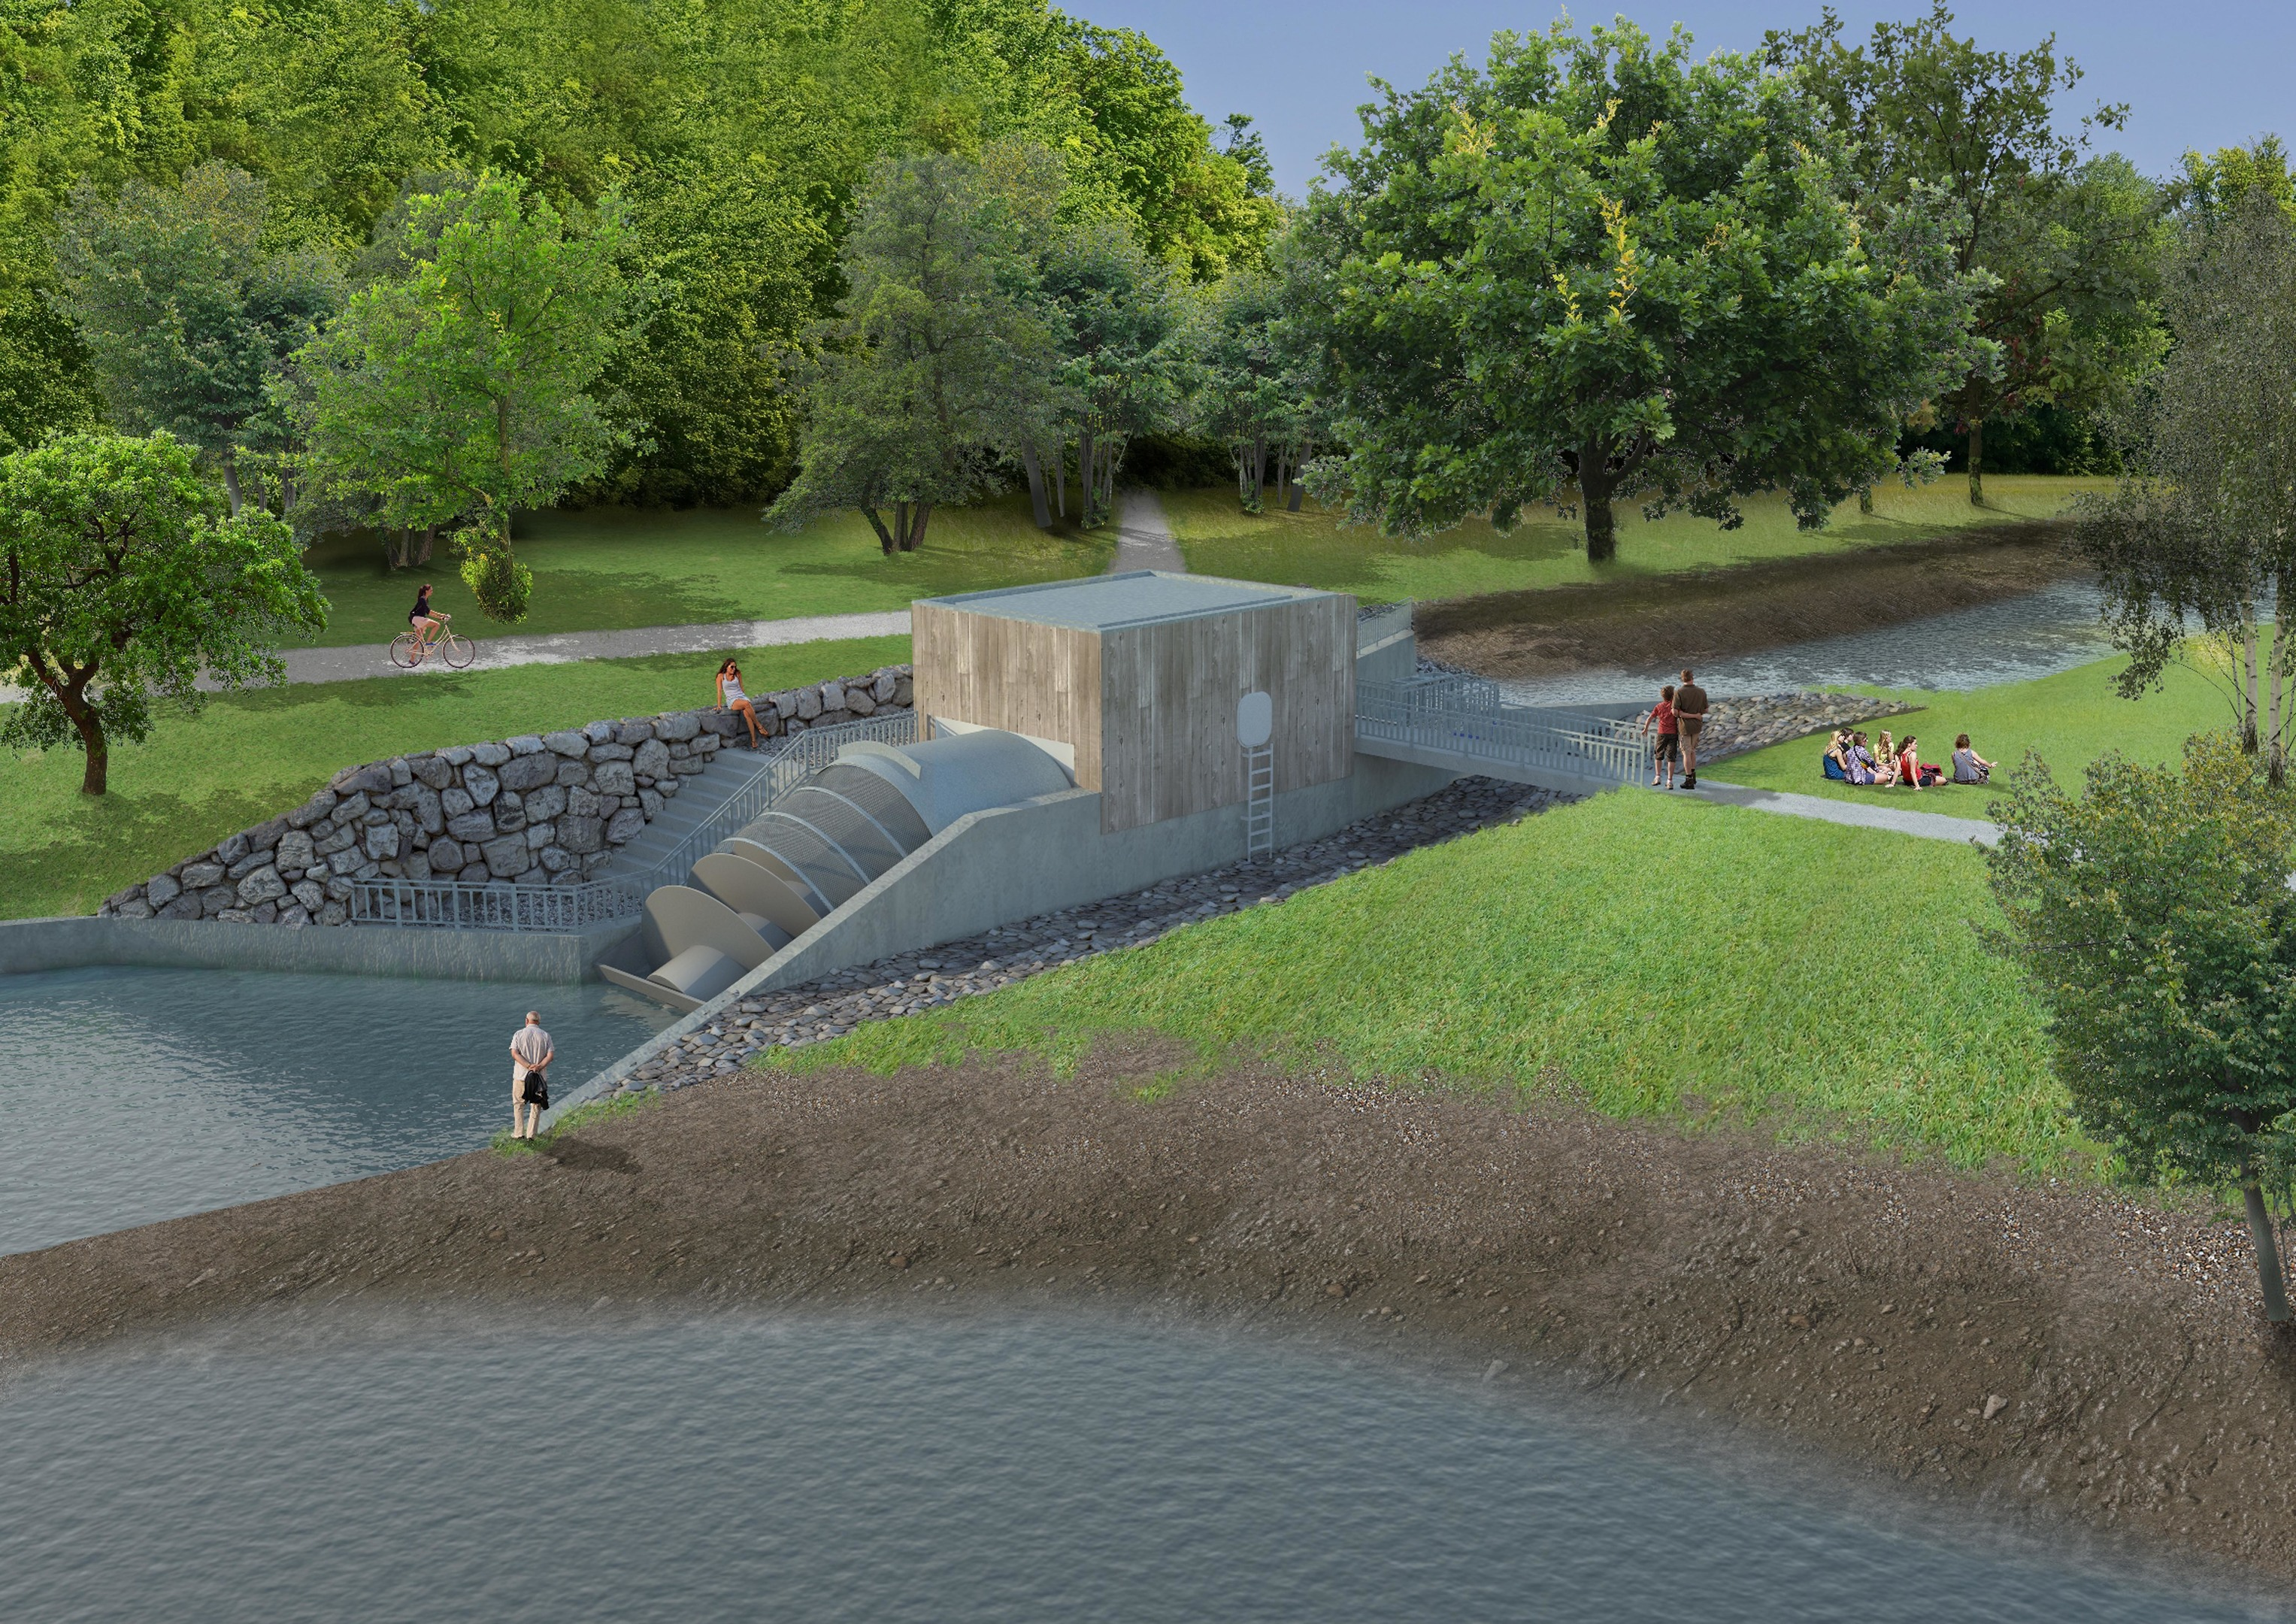 An artist's impression of the Donside Hydro scheme.